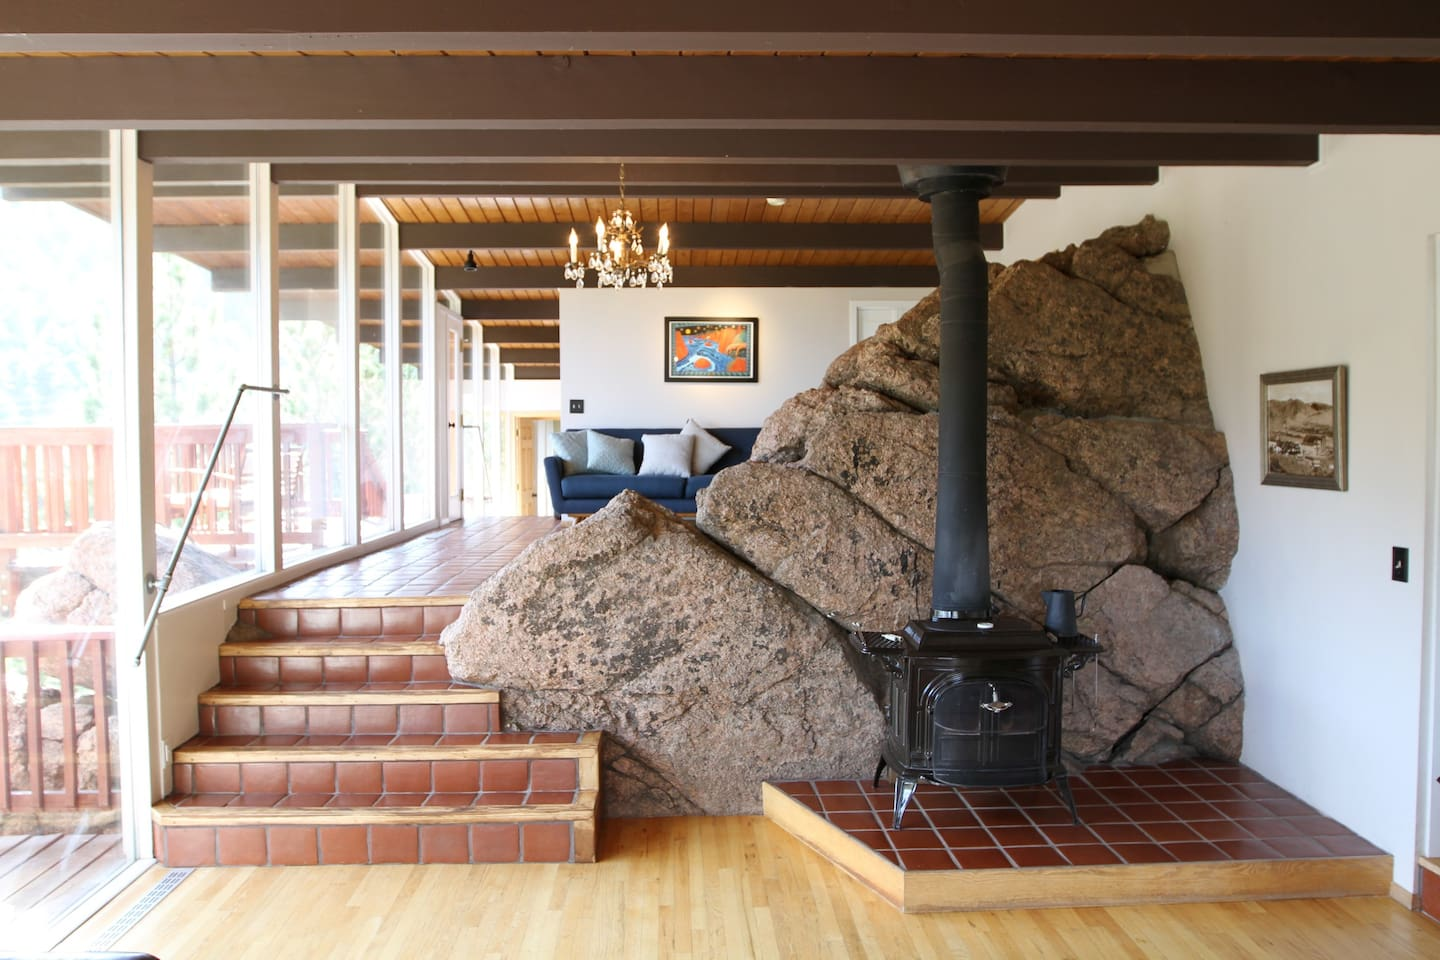 A rock flows through this house which is a copy of a Frank Lloyd Wright (making this a Frank Lloyd Wrong).